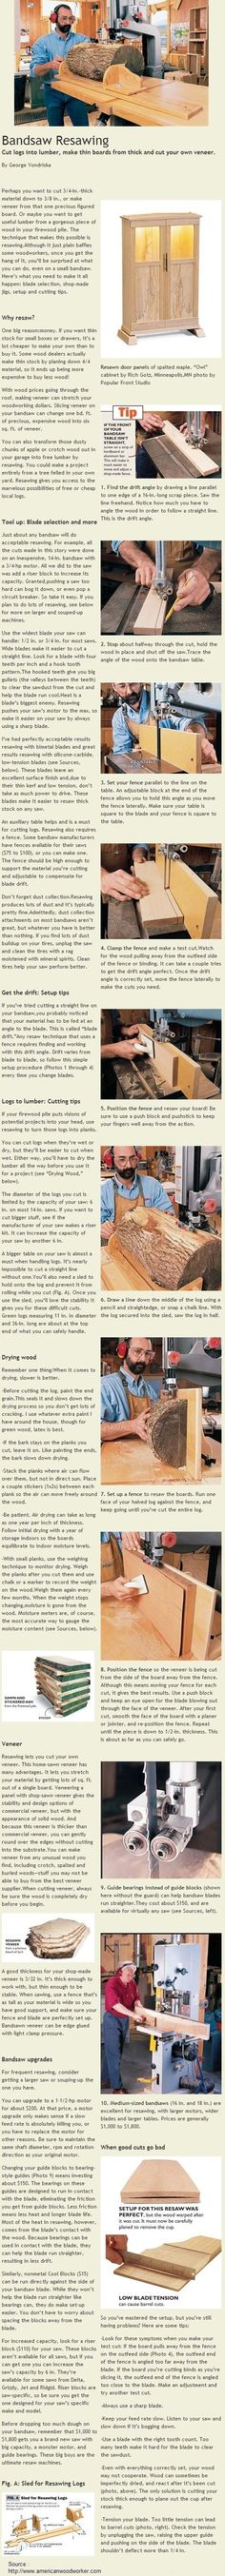 Bandsaw Resawing & Calculating Drift Angle on a Bandsaw.